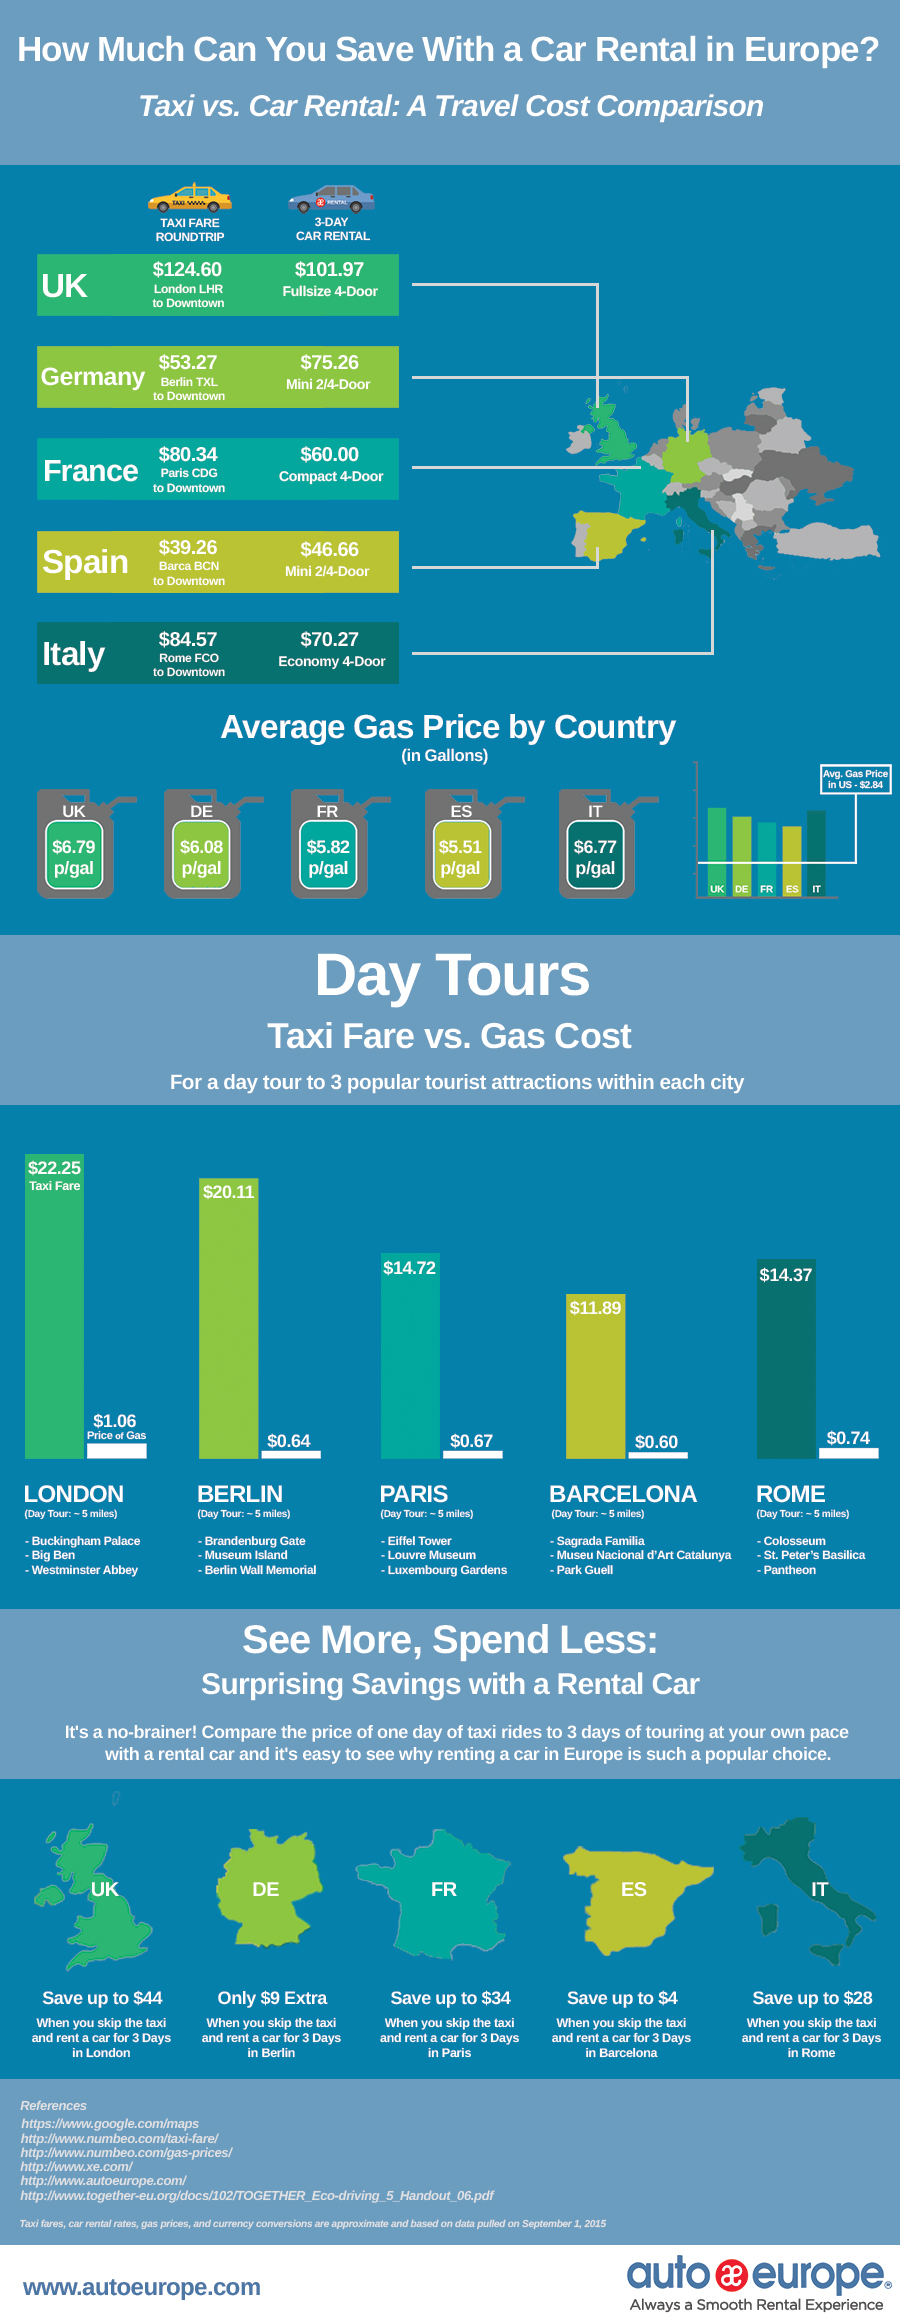 Taxi Or Car Rental In Europe Cost Comparison Infographic